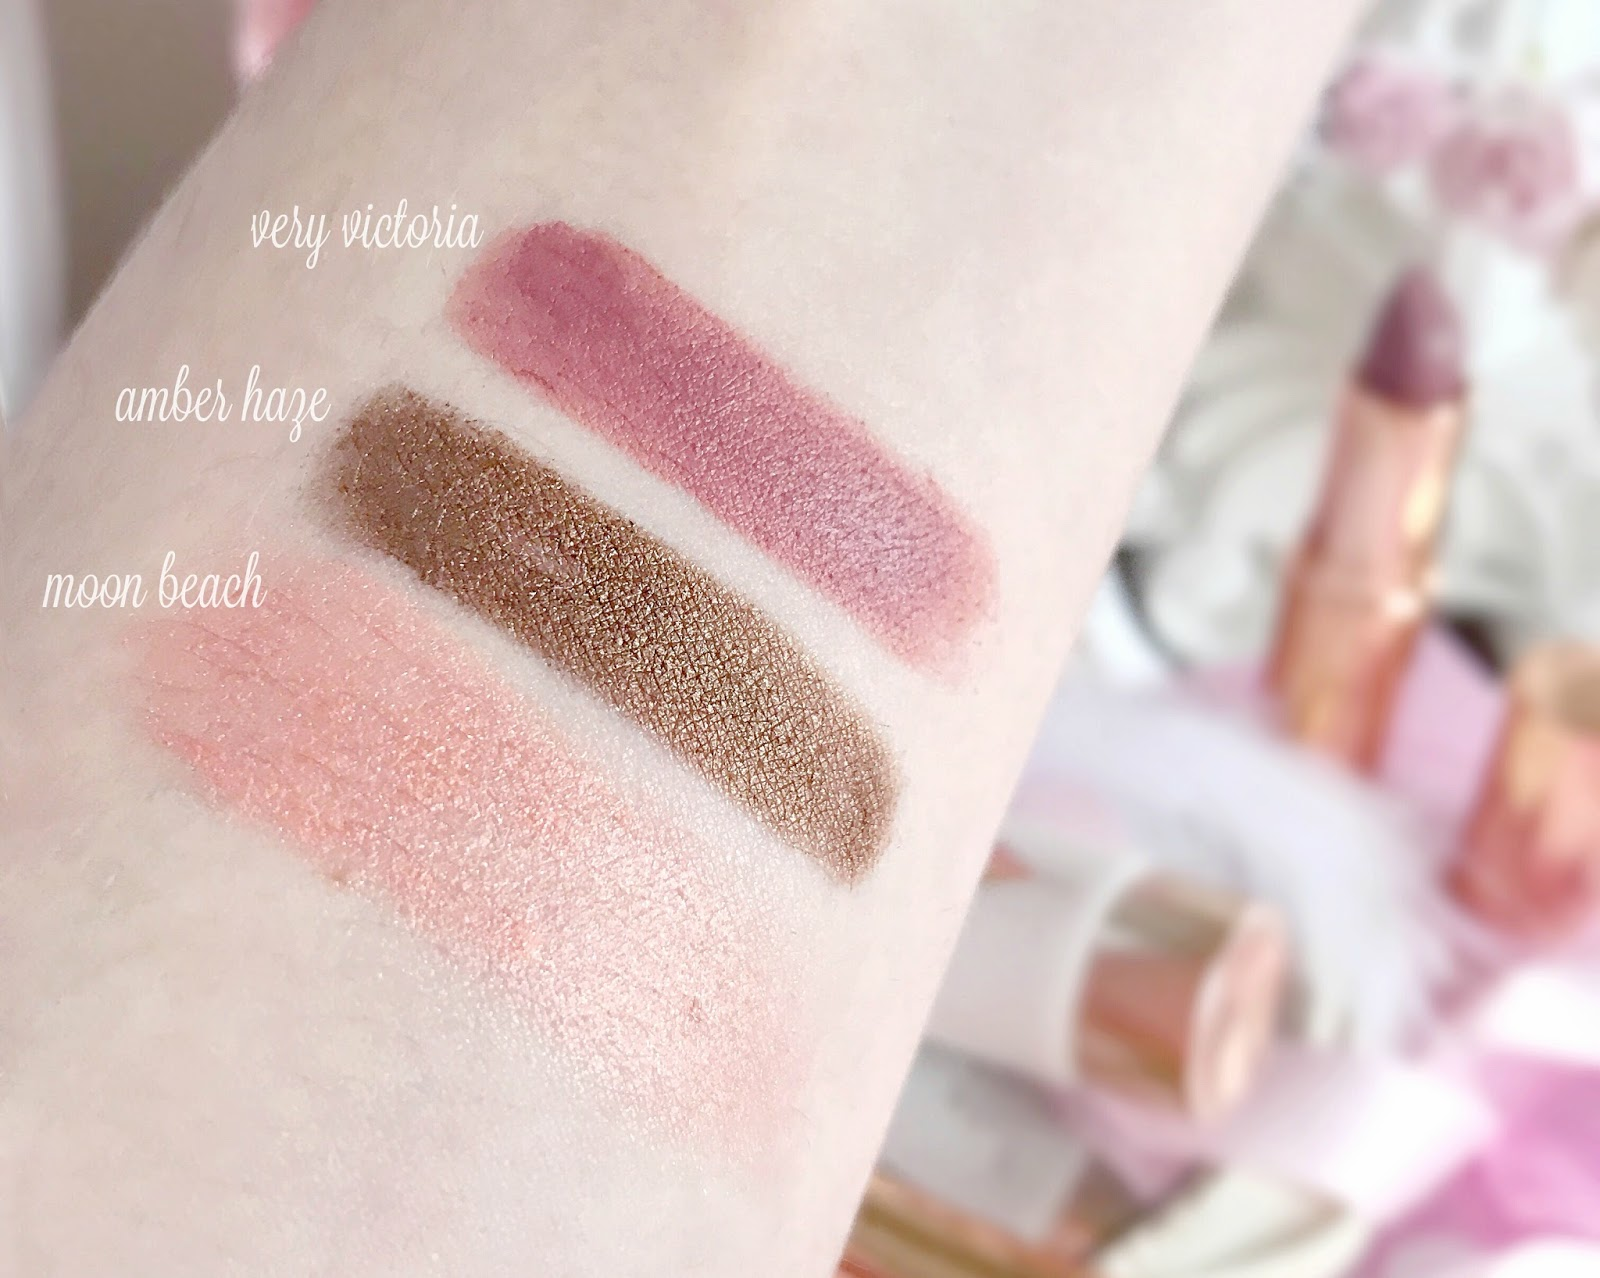 Charlotte Tilbury | Quick 'N' Easy Makeup Kit Swatches